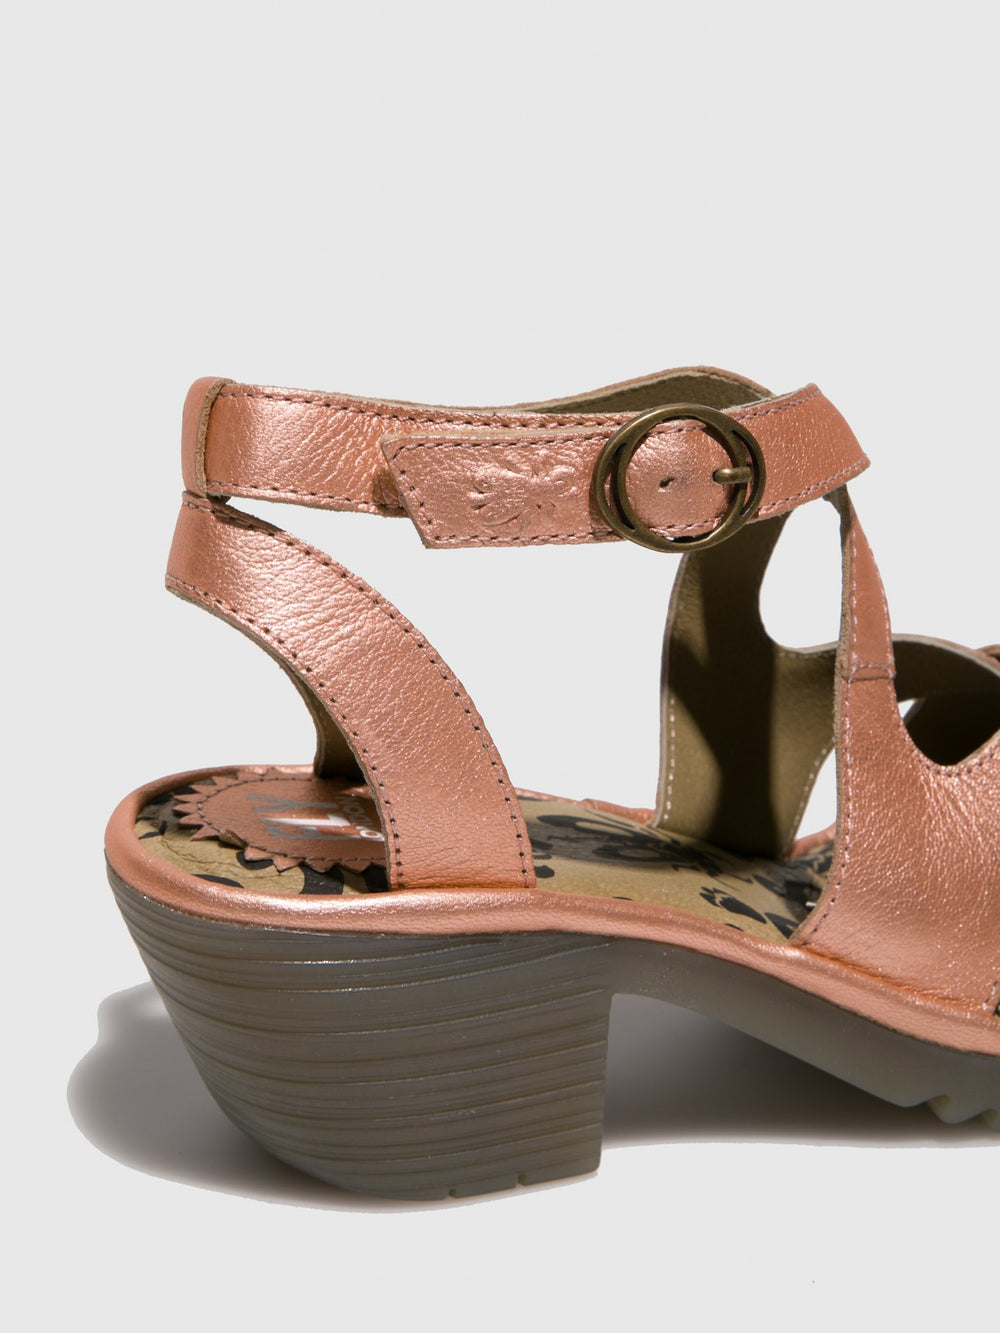 Ankle Strap Sandals WAFE152FLY BLUSH GOLD